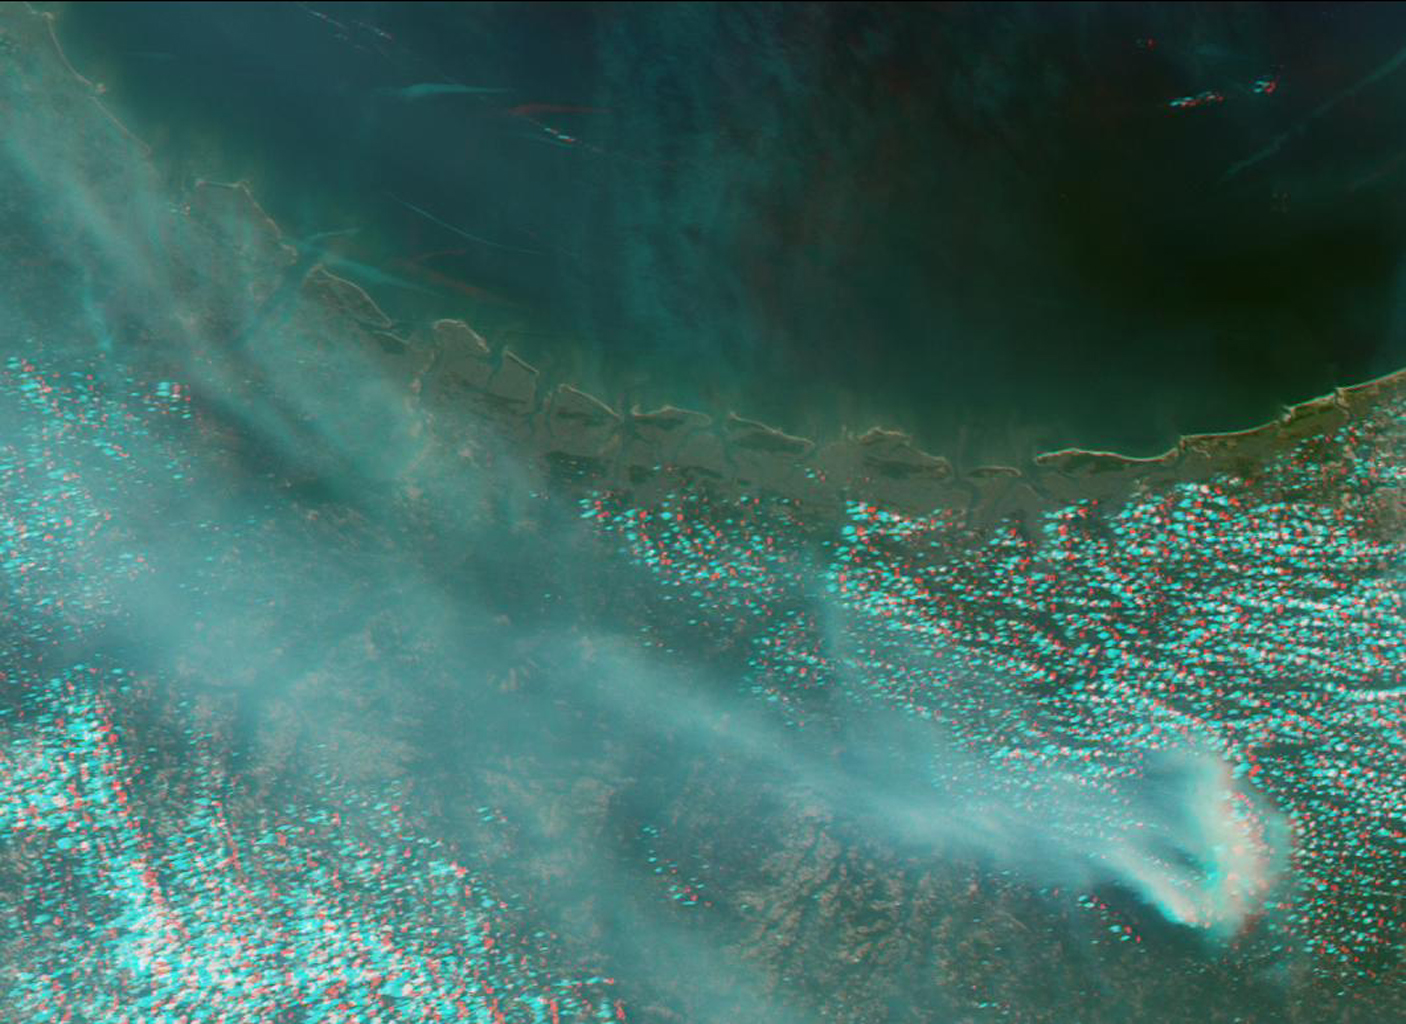 Large smoke plumes were produced by the Blackjack complex fire in southeastern Georgia's Okefenokee Swamp as seen by the MISR instrument aboard NASA's Terra spacecraft May 8, 2002. 3D glasses are necessary to view this image.